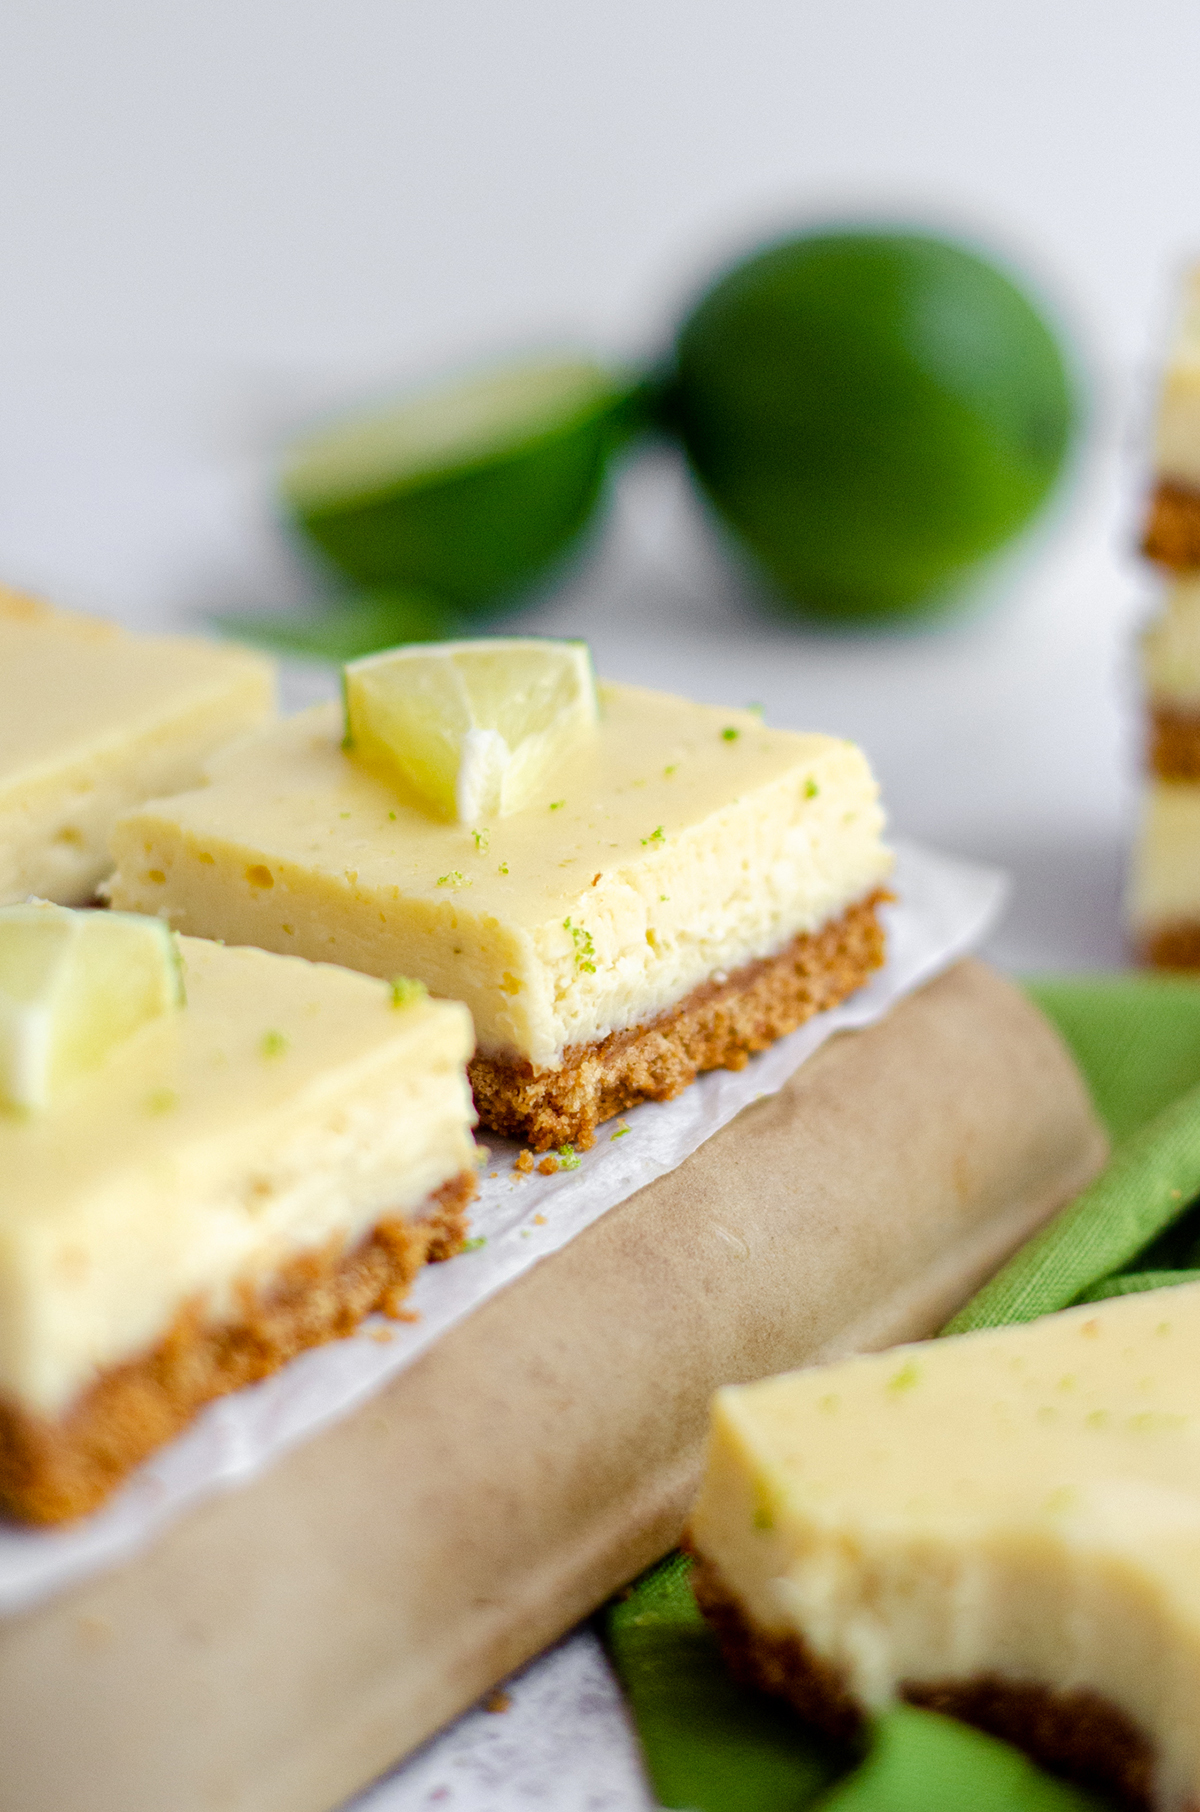 key lime pie bars on a platter with limes and slices of limes scattered around them